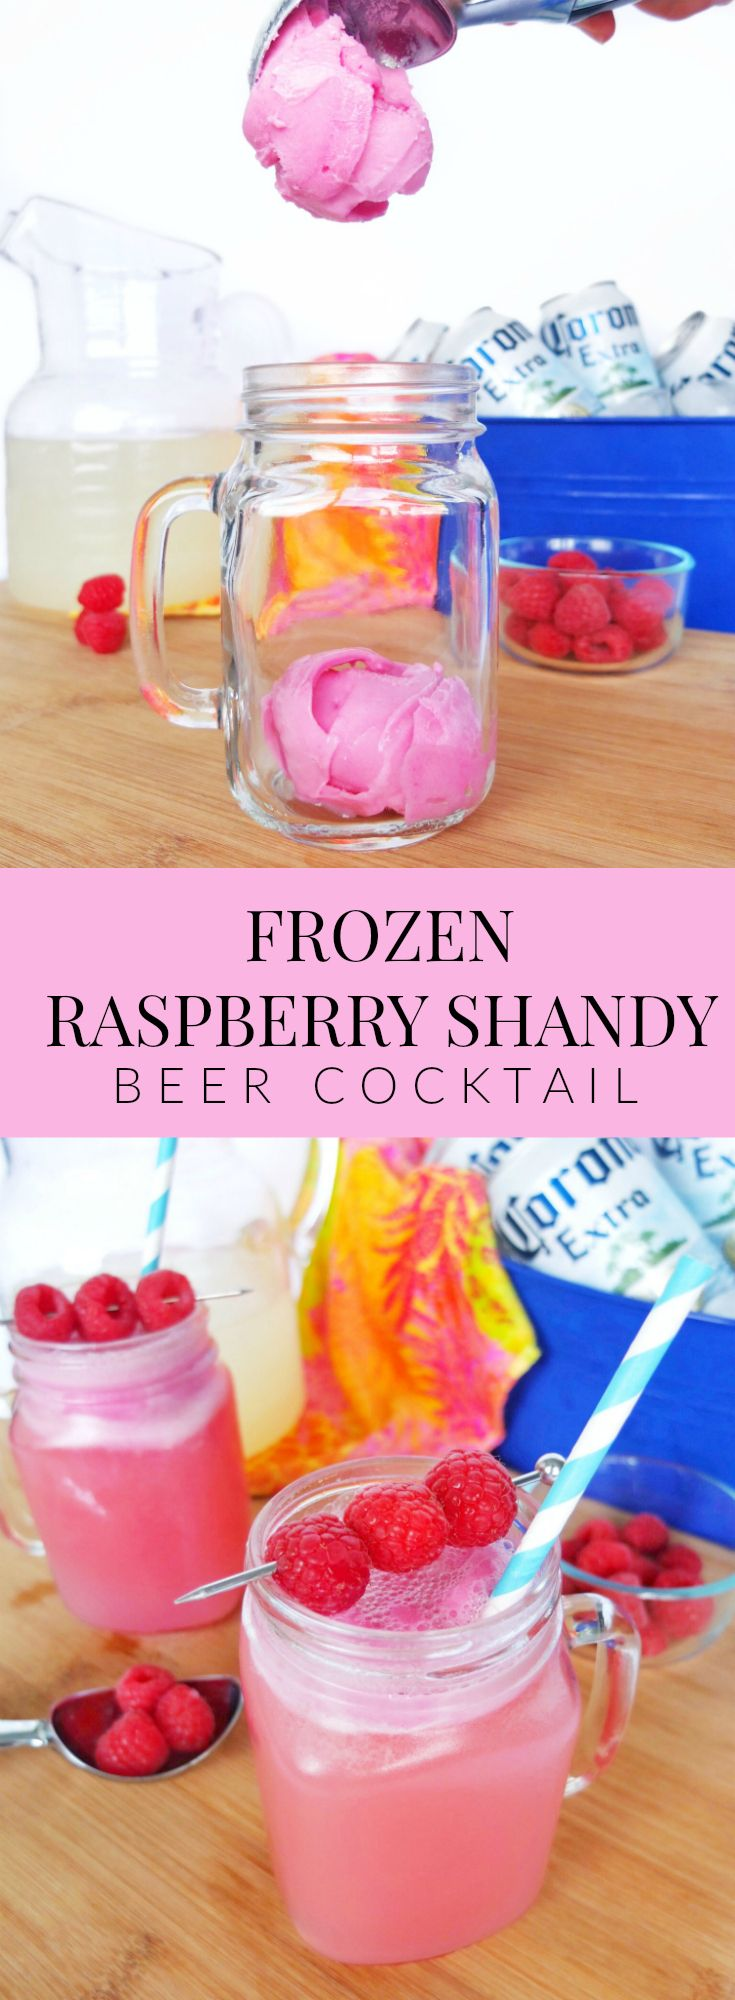 Msg 4 21+ This Frozen Raspberry Shandy beer cocktail featuring Corona Extra, raspberry sherbet, and lemonade is going to be your new goto cocktail to for a carefree summer. #ad #SummertimeCerveza // www.ElleTalk.com